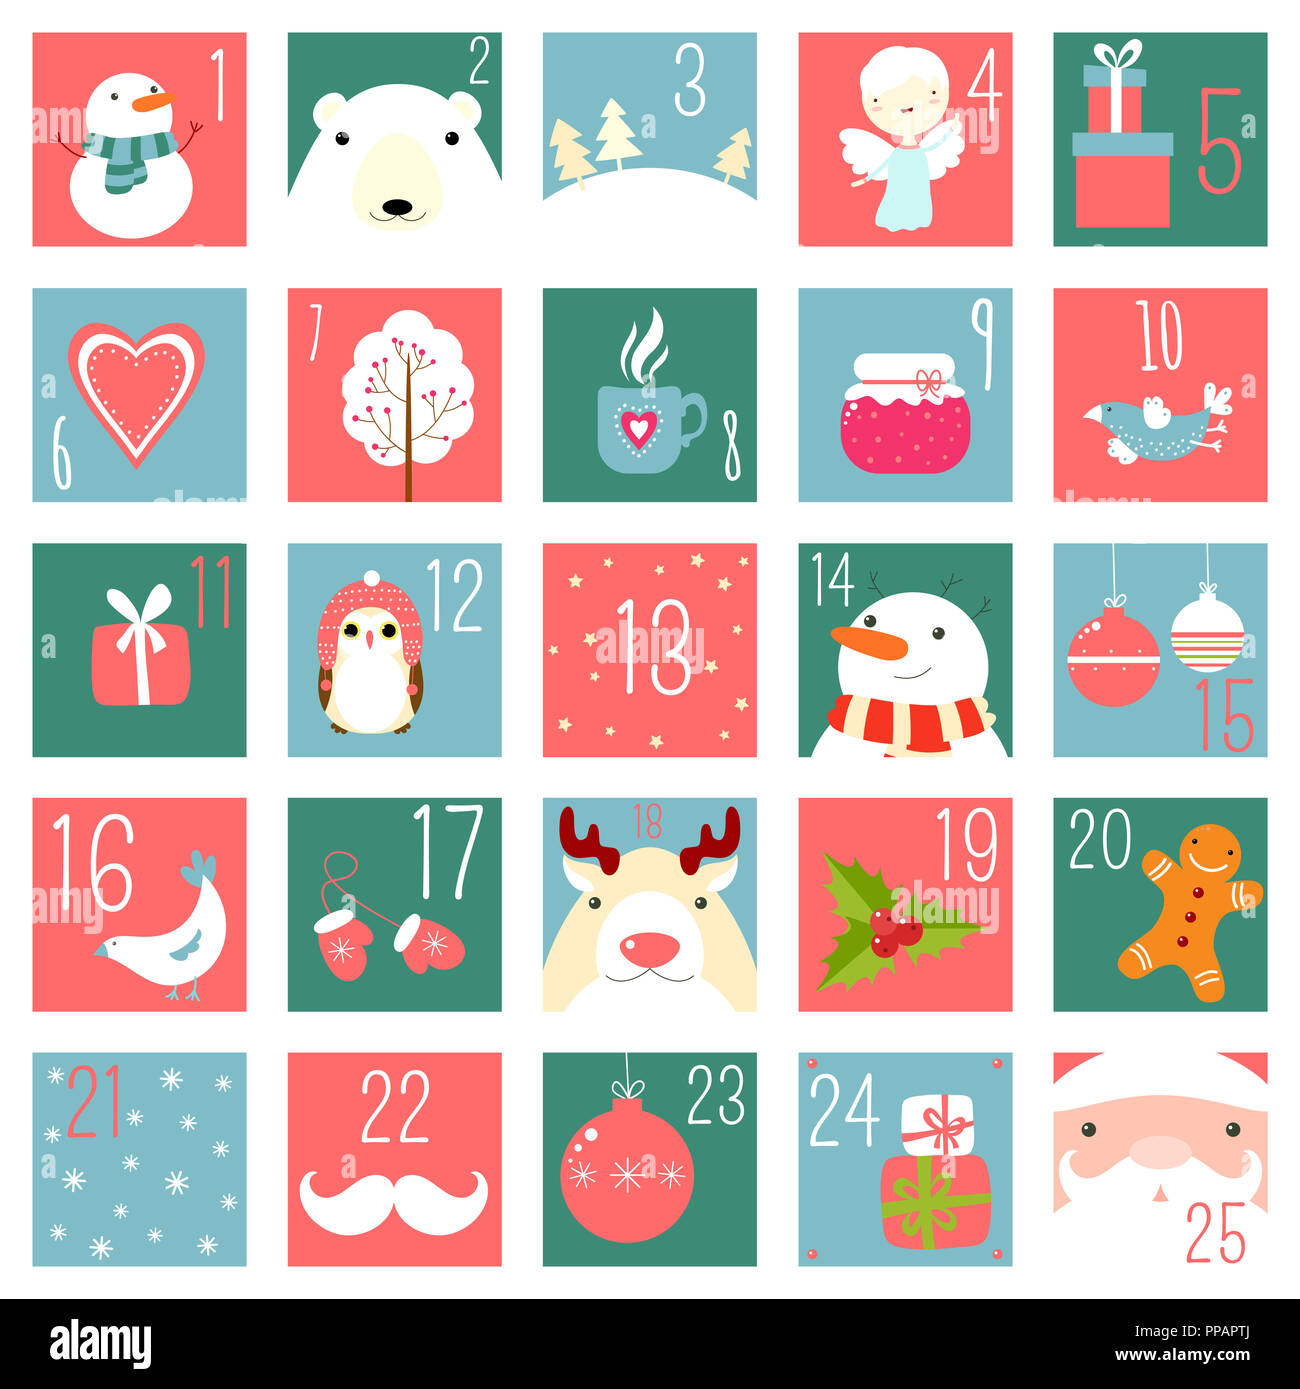 Christmas advent calendar with elements in naive hand drawn style. Set of winter holiday xmas icons with Santa Claus, polar bear, gifts, snowman, snow - Stock Image